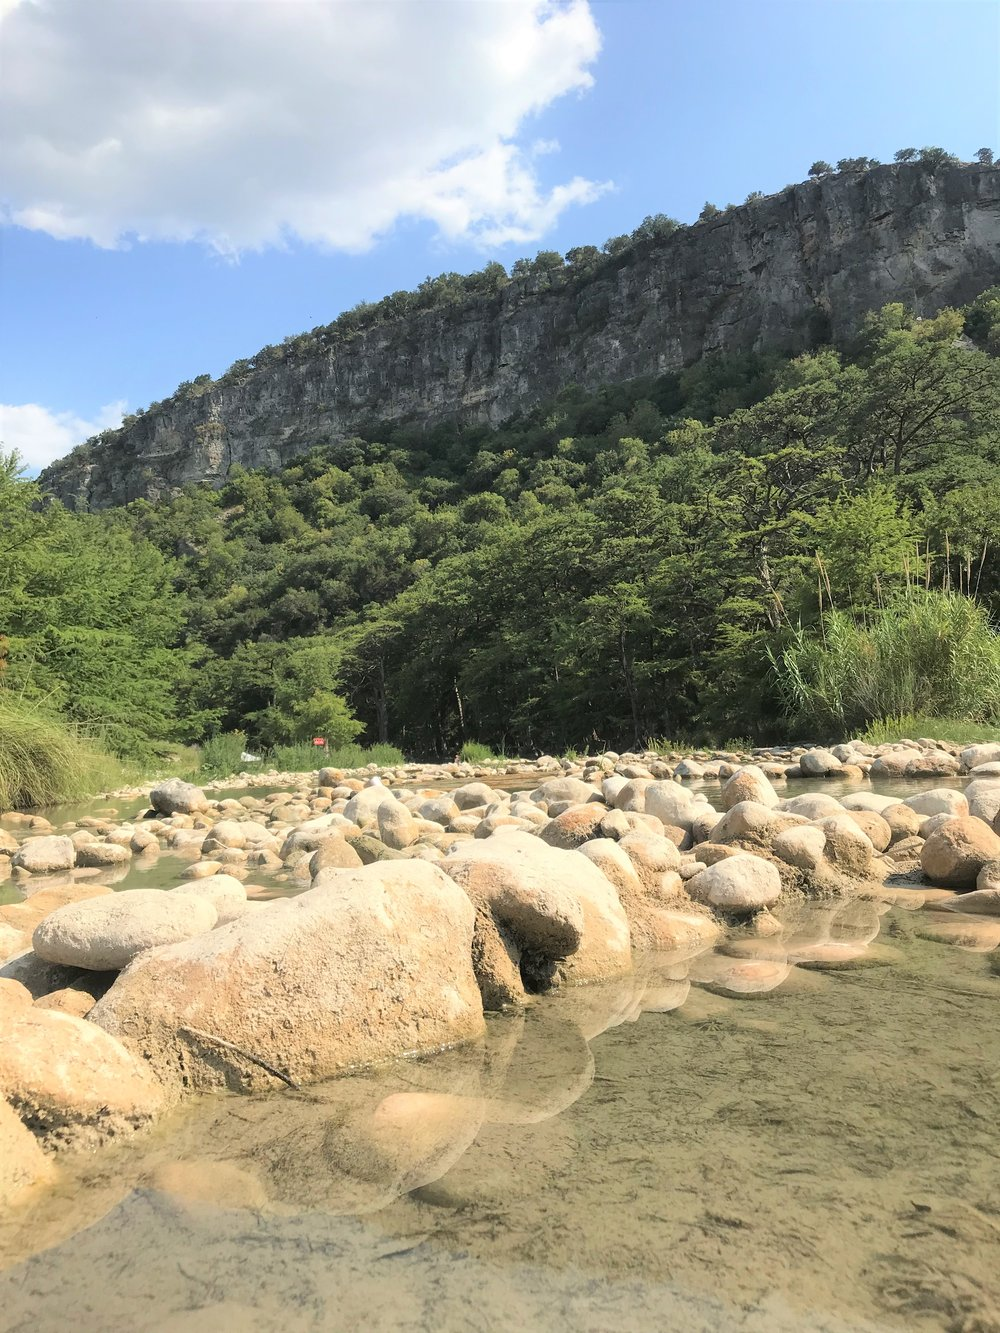 With cool, clear water running through the Frio River, plenty of hiking trails and an outdoor dance floor, it's easy to understand why many Texans travel to Garner State Park each spring, summer and fall to enjoy its beauty.  But it's likely that not every visitor will be inclined to spend a night under the stars — cramped in a sleeping bag, inside a small tent, nestled among rocks, twigs, dirt and free-roaming wildlife.